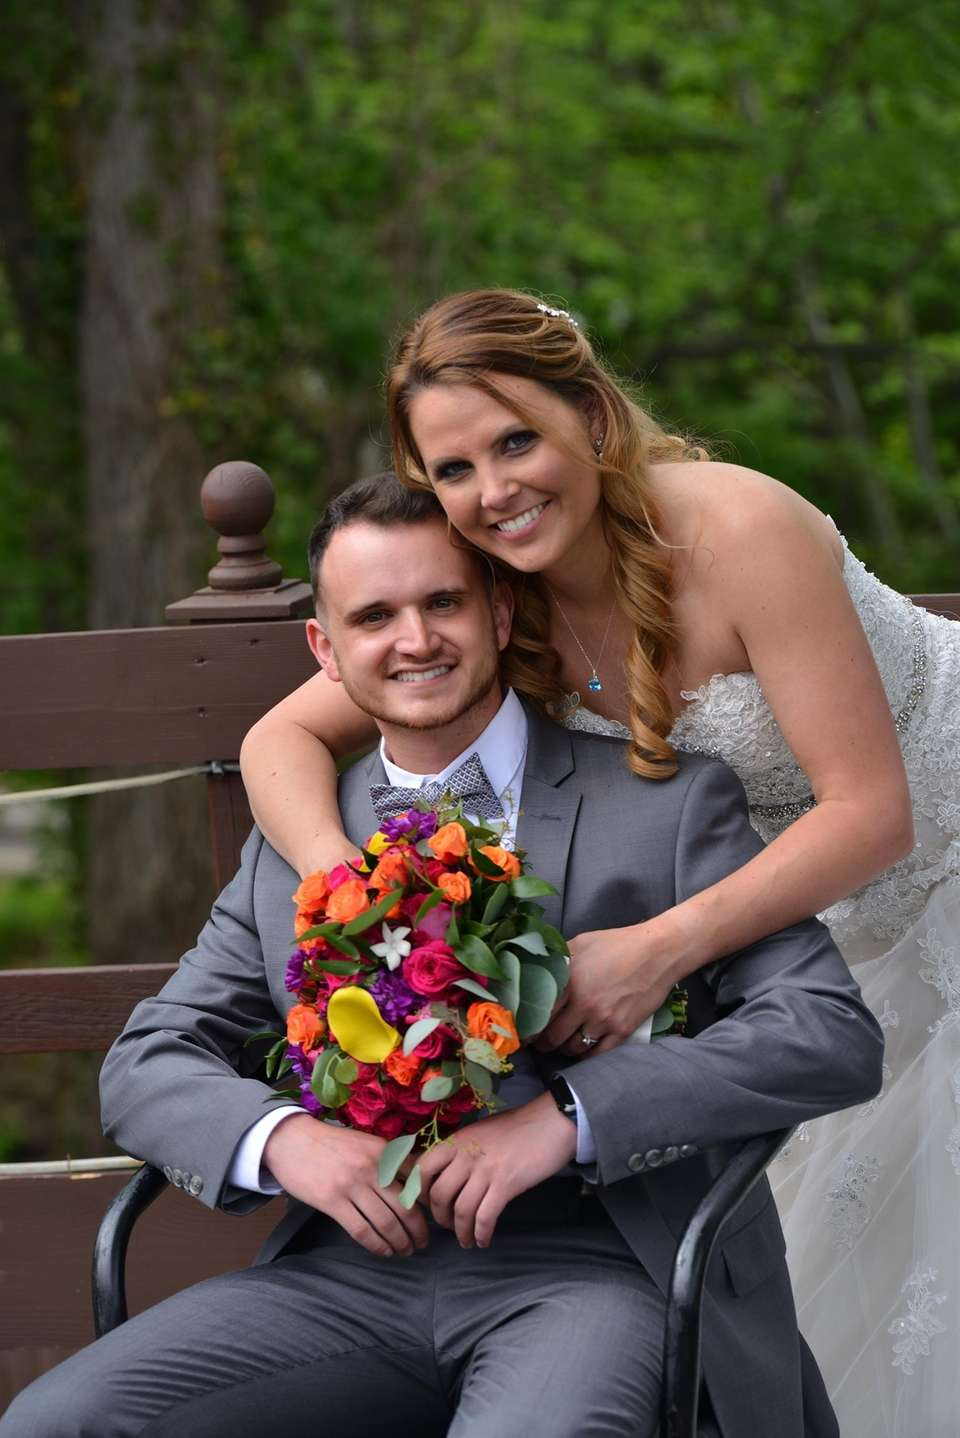 Courtney and Anthony Bongiorno were married on May